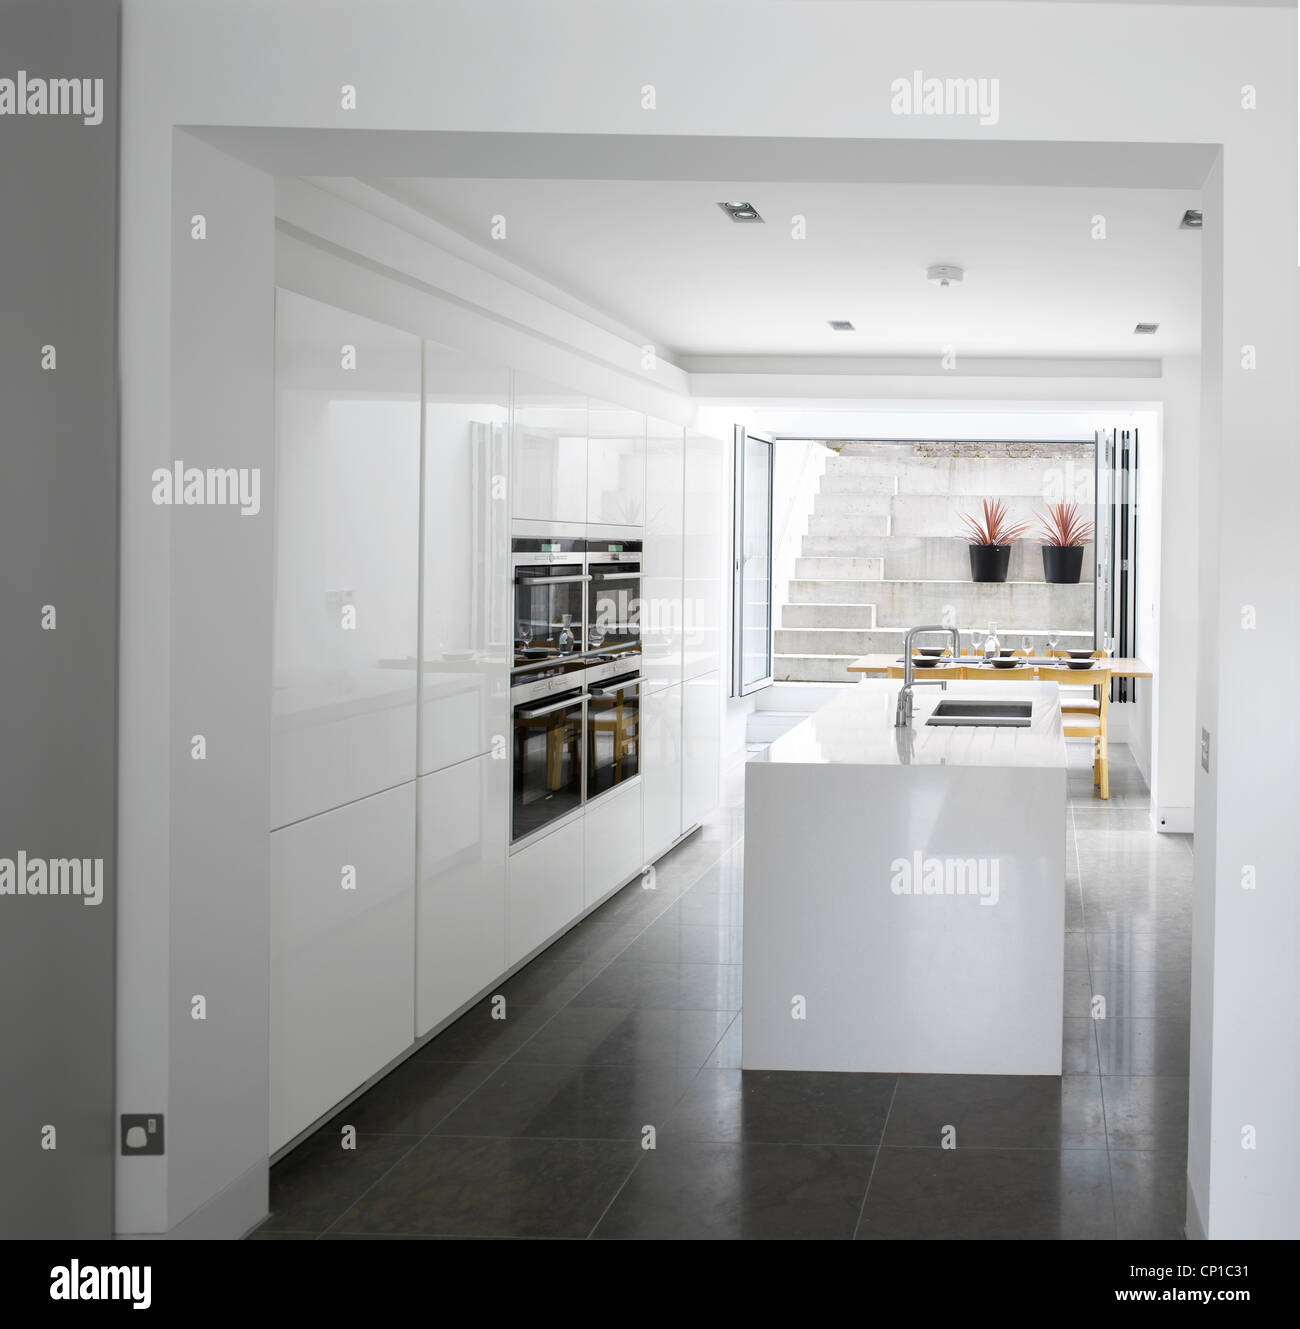 Basement Kitchen Stockfotos & Basement Kitchen Bilder - Seite 2 - Alamy